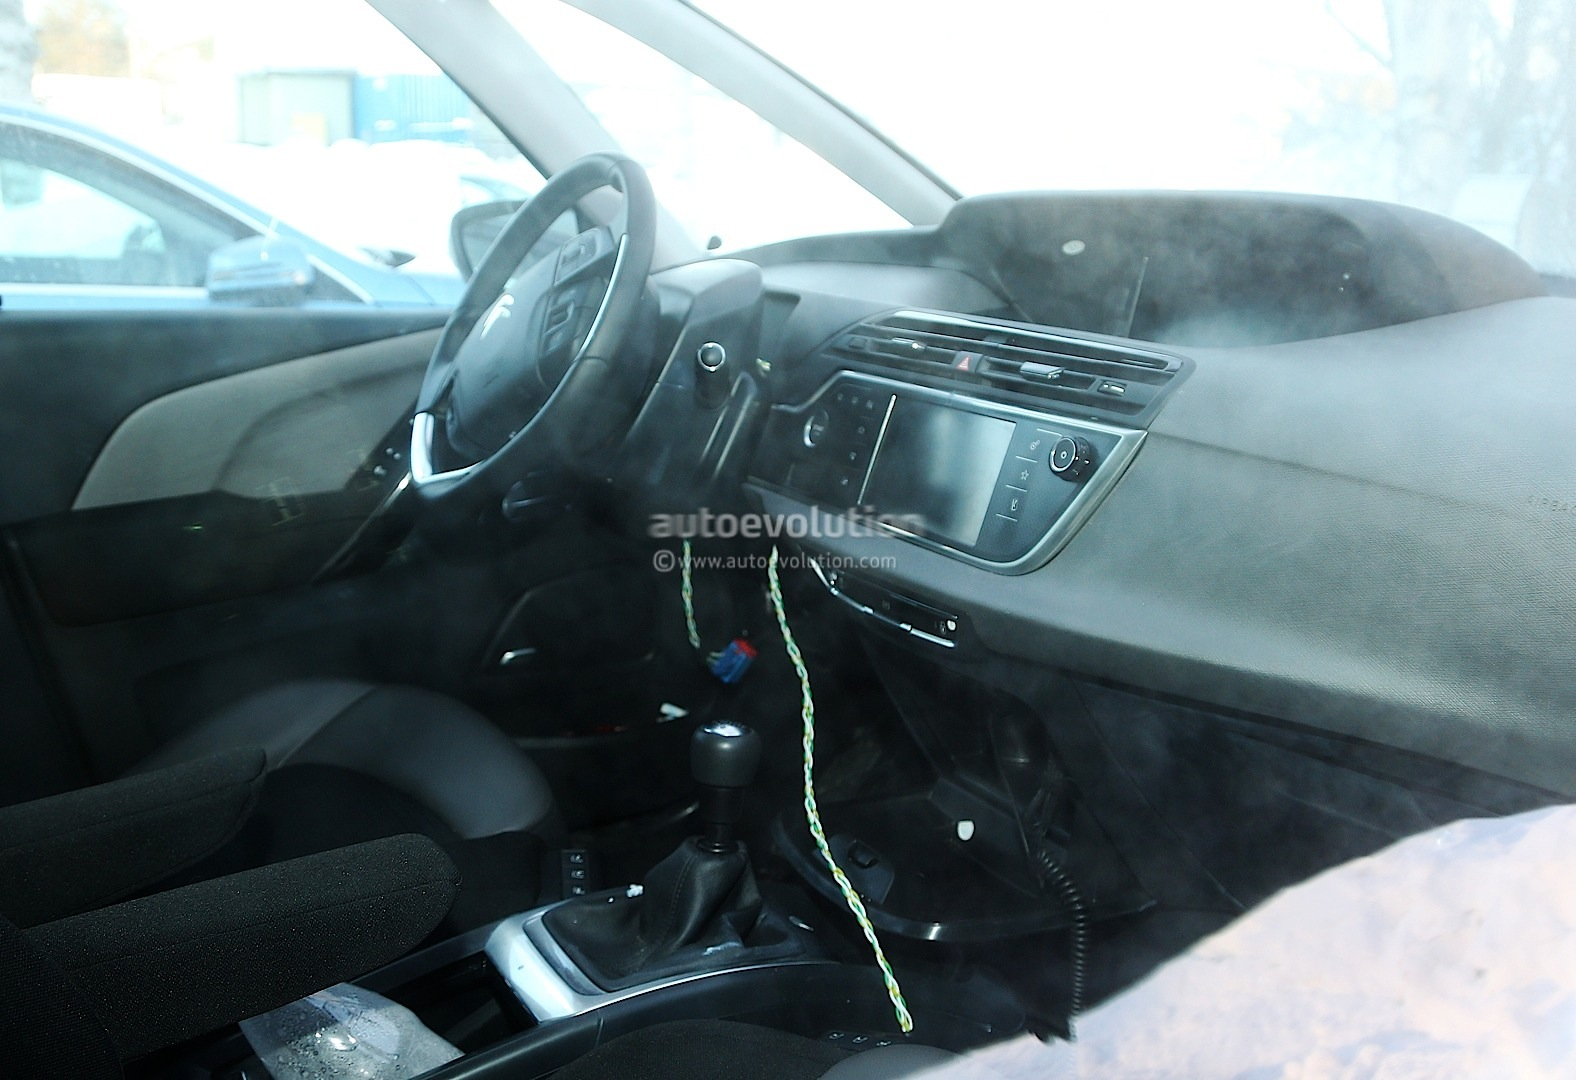 Spyshots 2014 citroen c4 picasso interior revealed for C4 picasso 2013 interieur